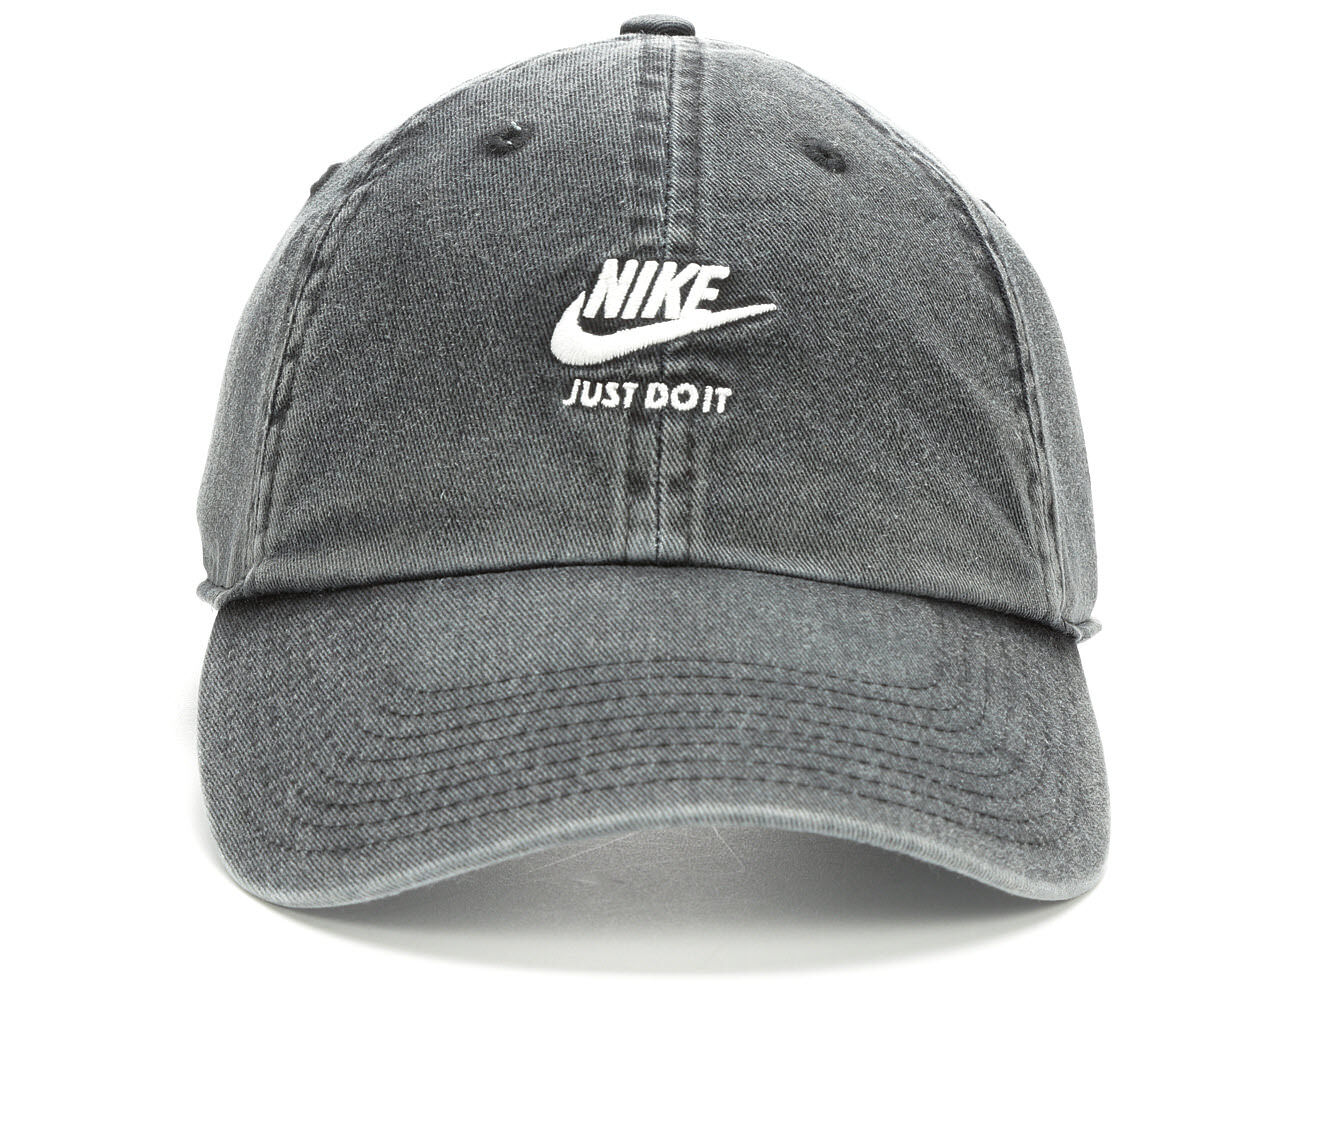 d90b67bb ... discount code for nike just do it baseball cap b4790 1f181